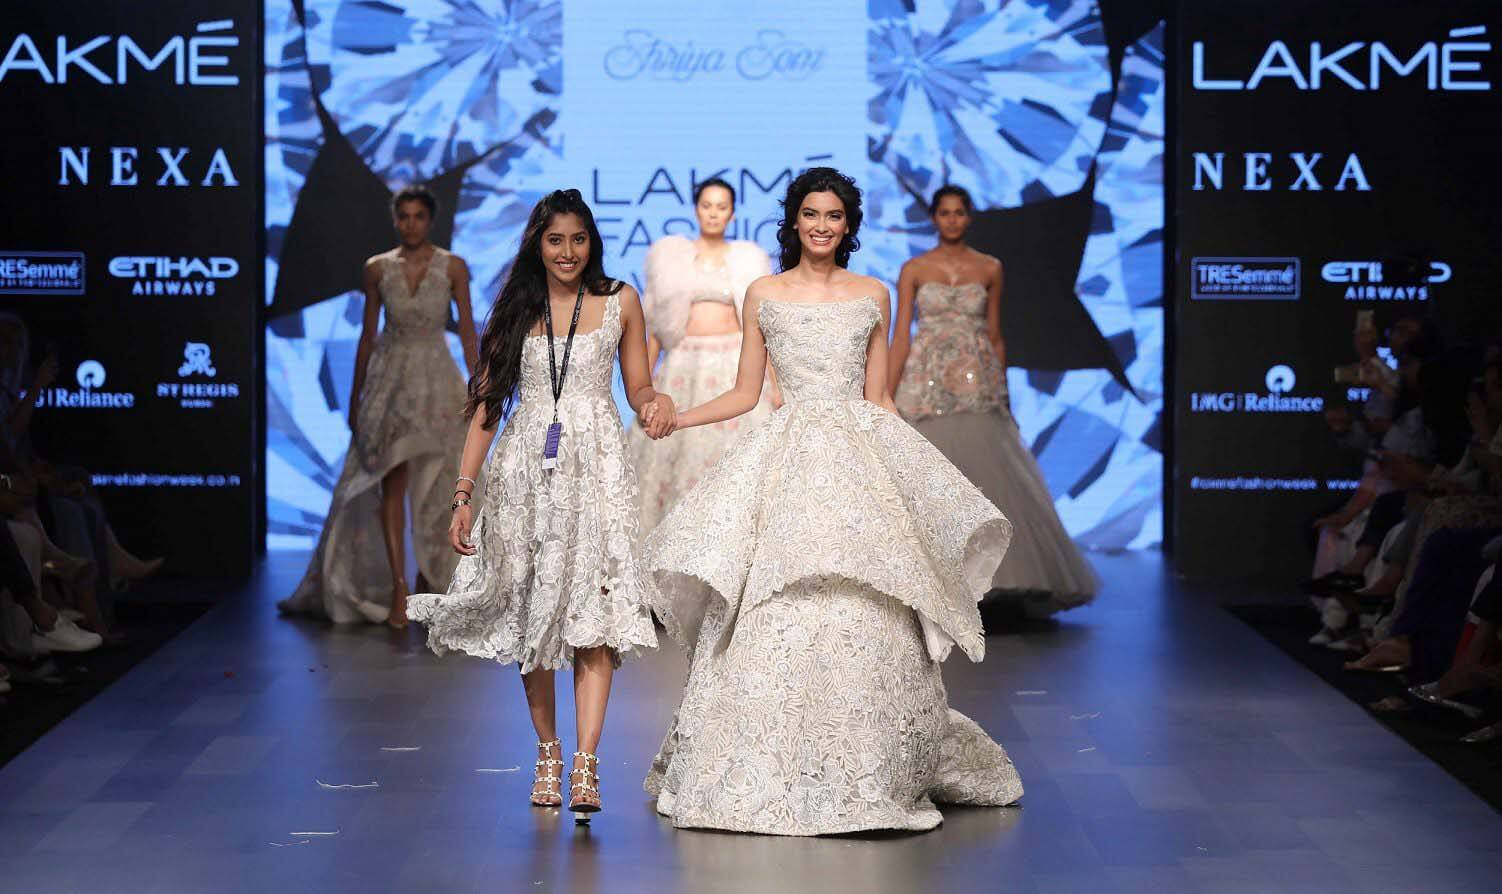 Lakme Fashion Week Summer Resort 2019 Kick Start With Ace Designers